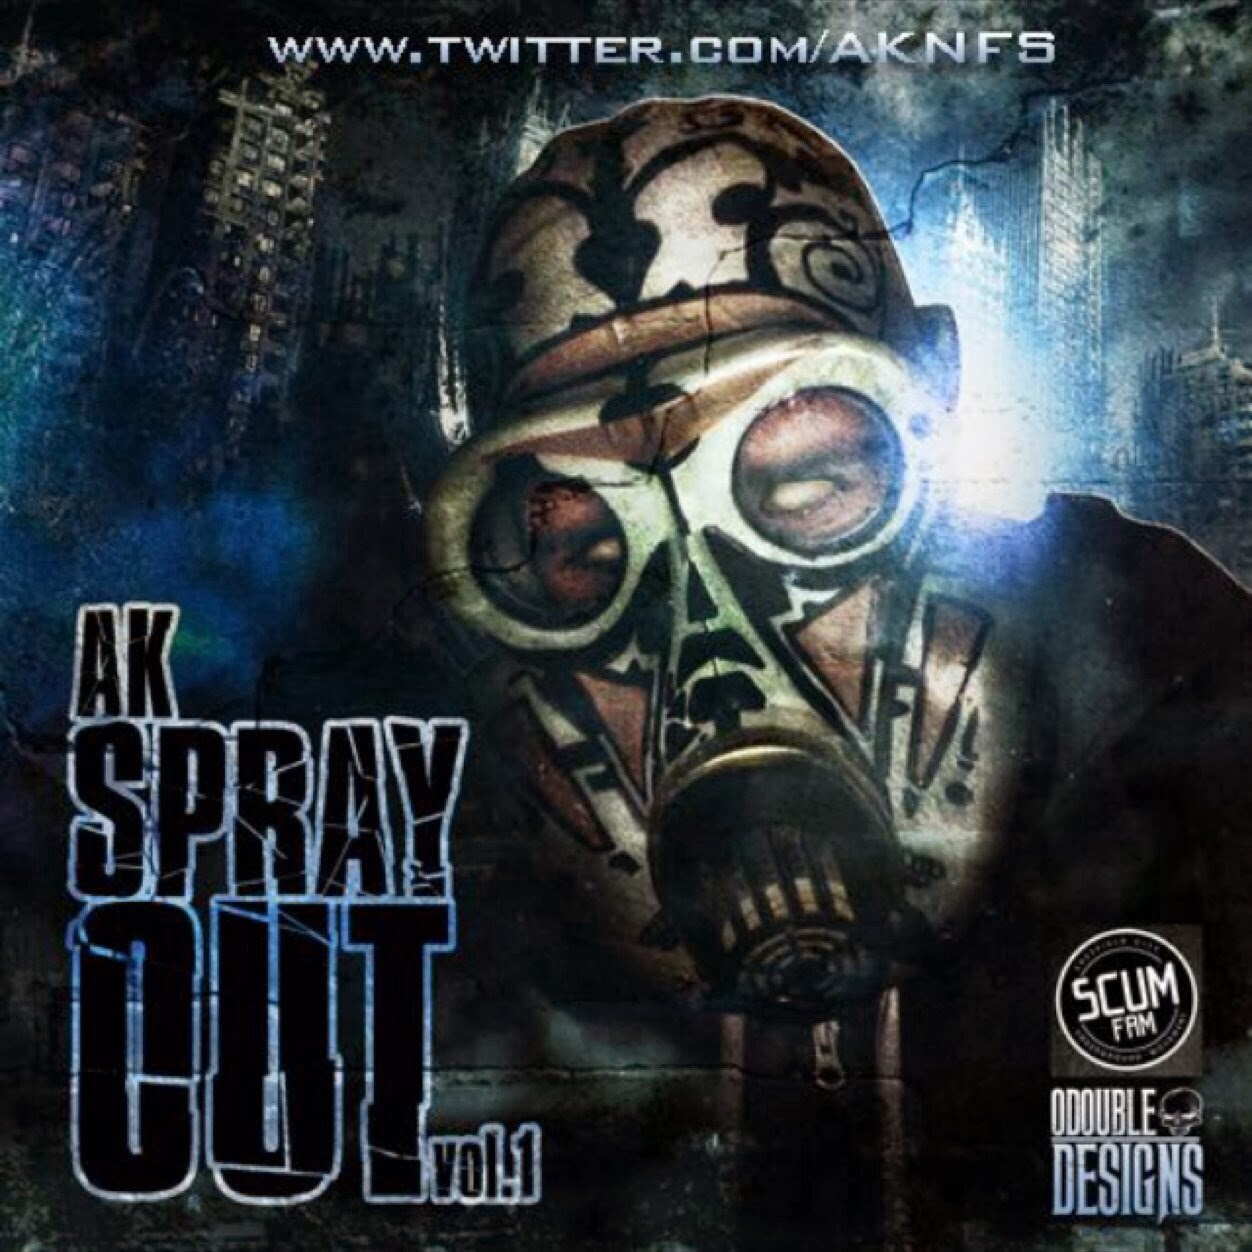 Ak - Spray Out Vol. 1